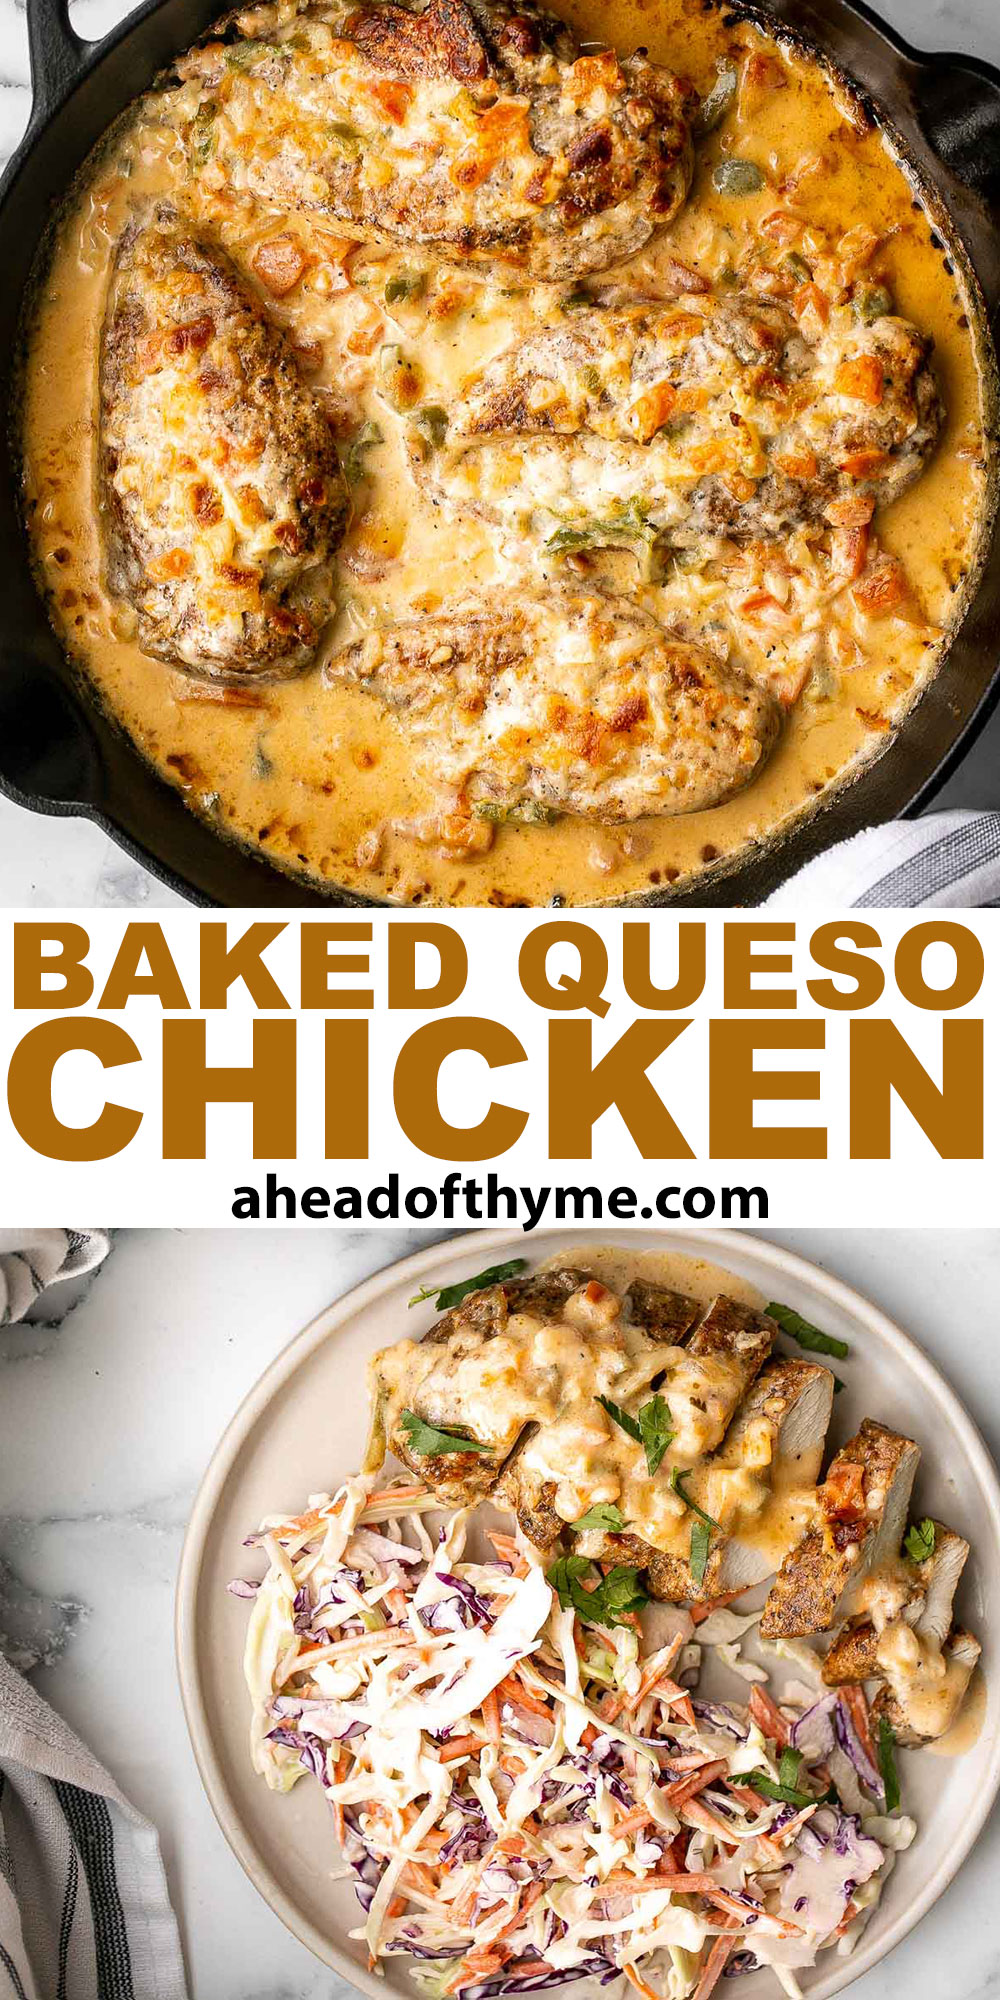 Baked Queso Chicken